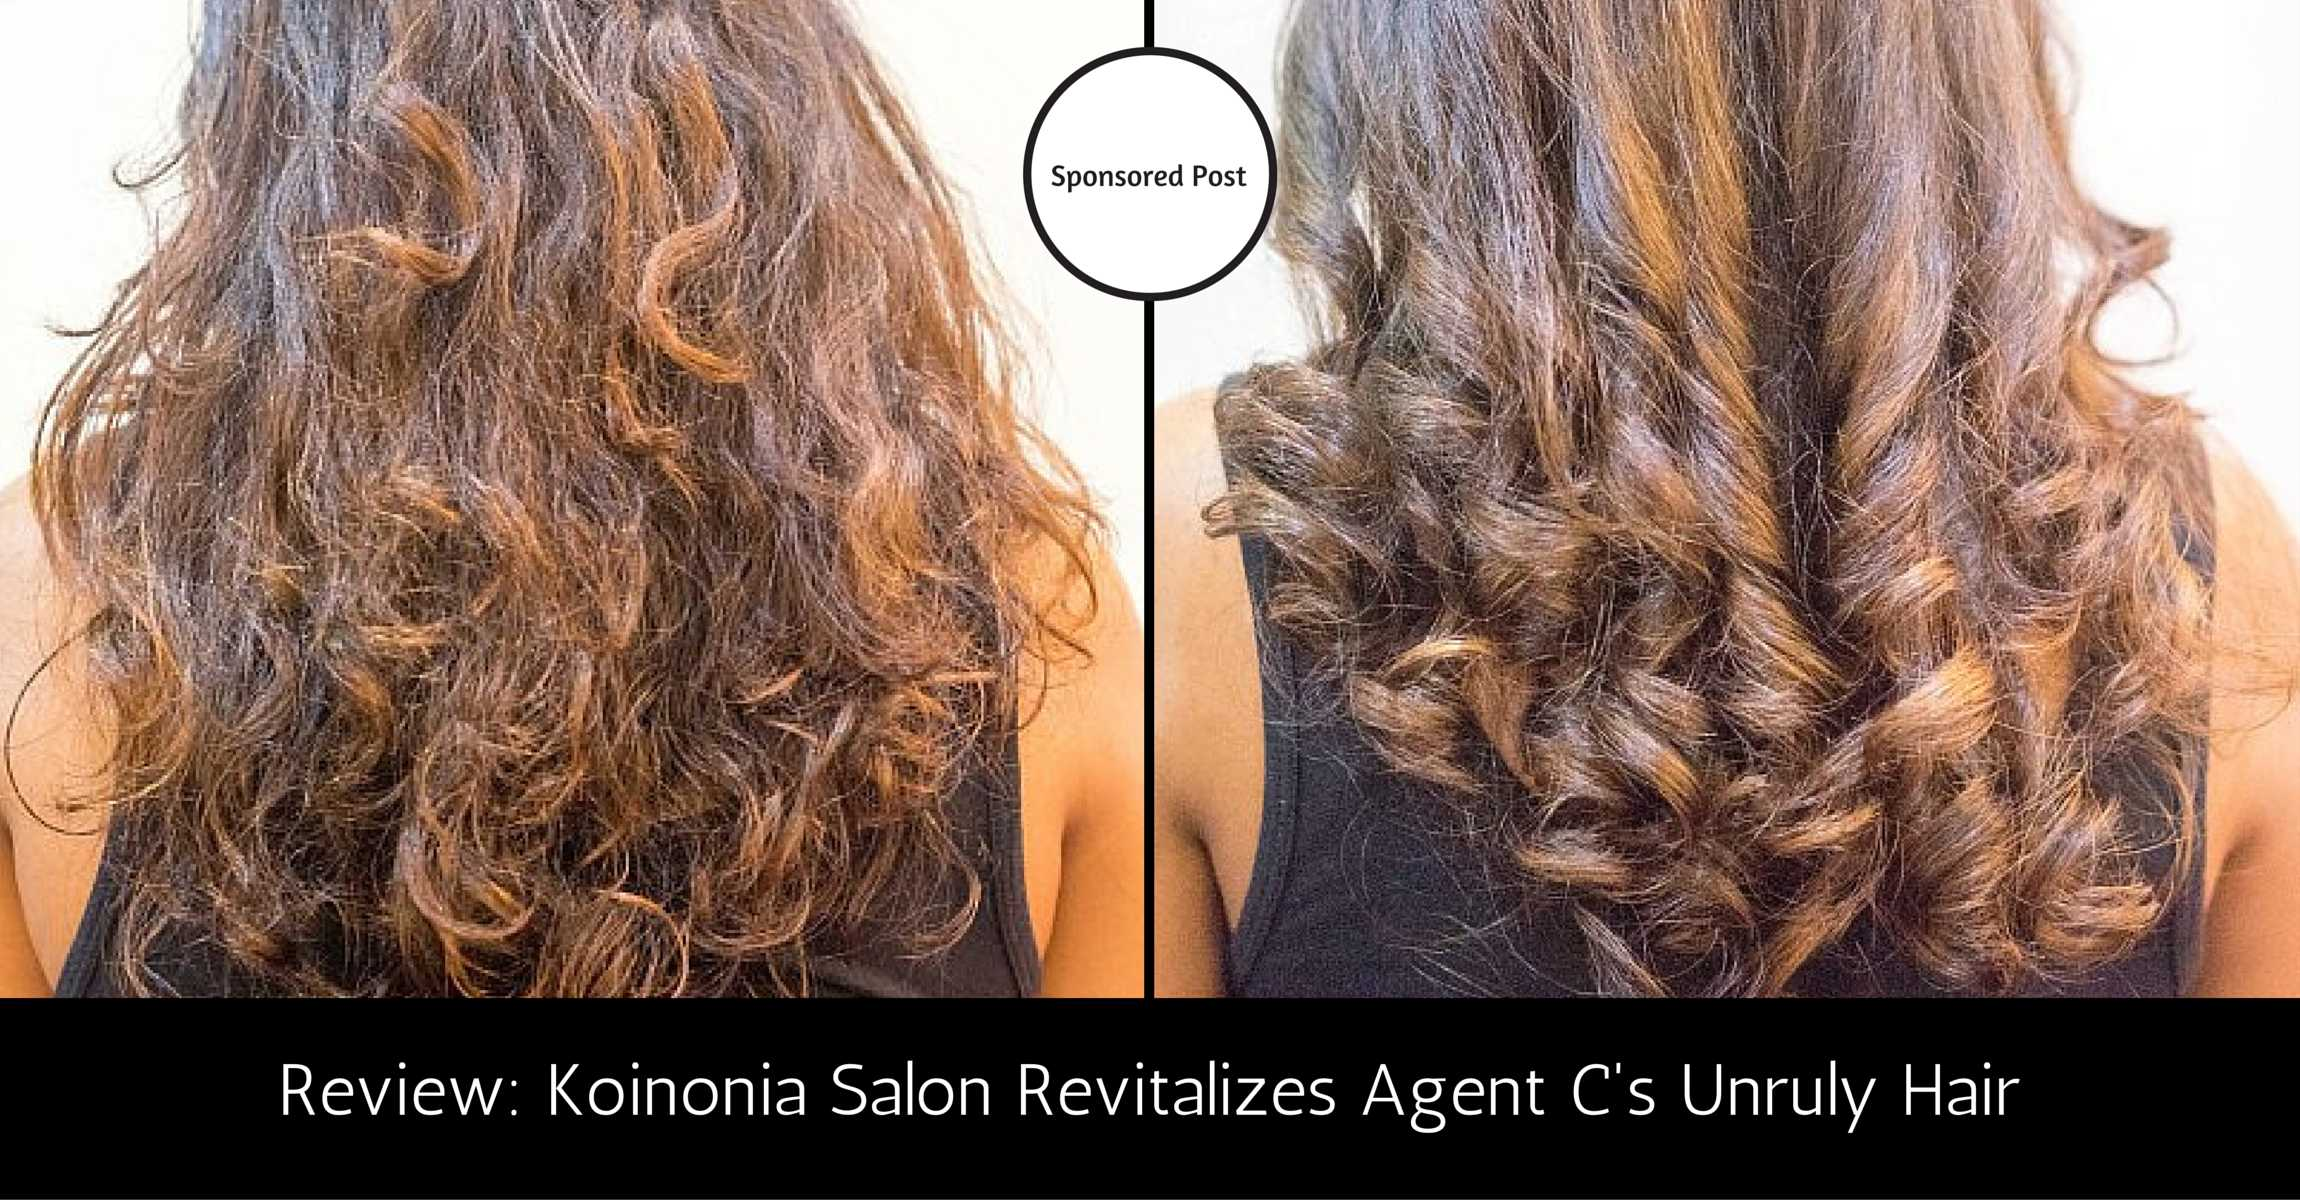 Taming the Frizzy Mane: Koinonia Salon Revitalizes Agent C's Unruly Hair